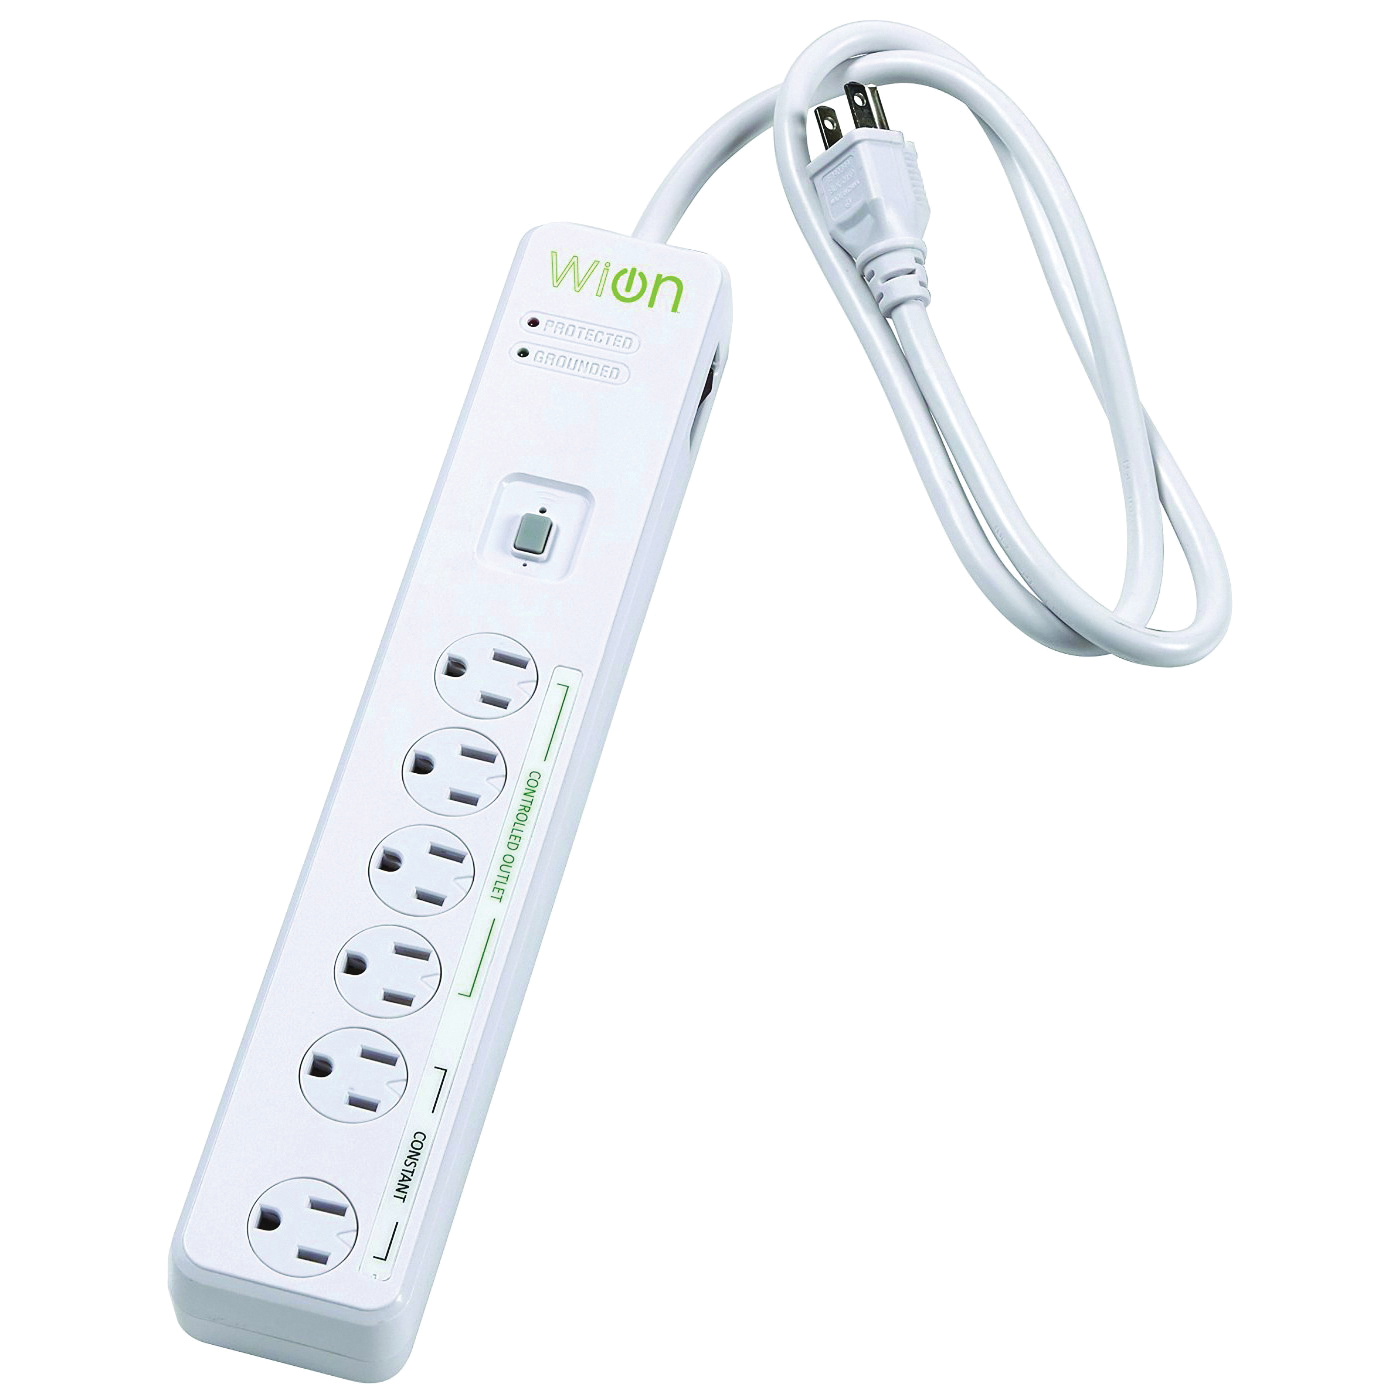 Picture of CCI 50051 Surge Protector, 120 V, 15 A, 4-Outlet, 900 J Energy, White